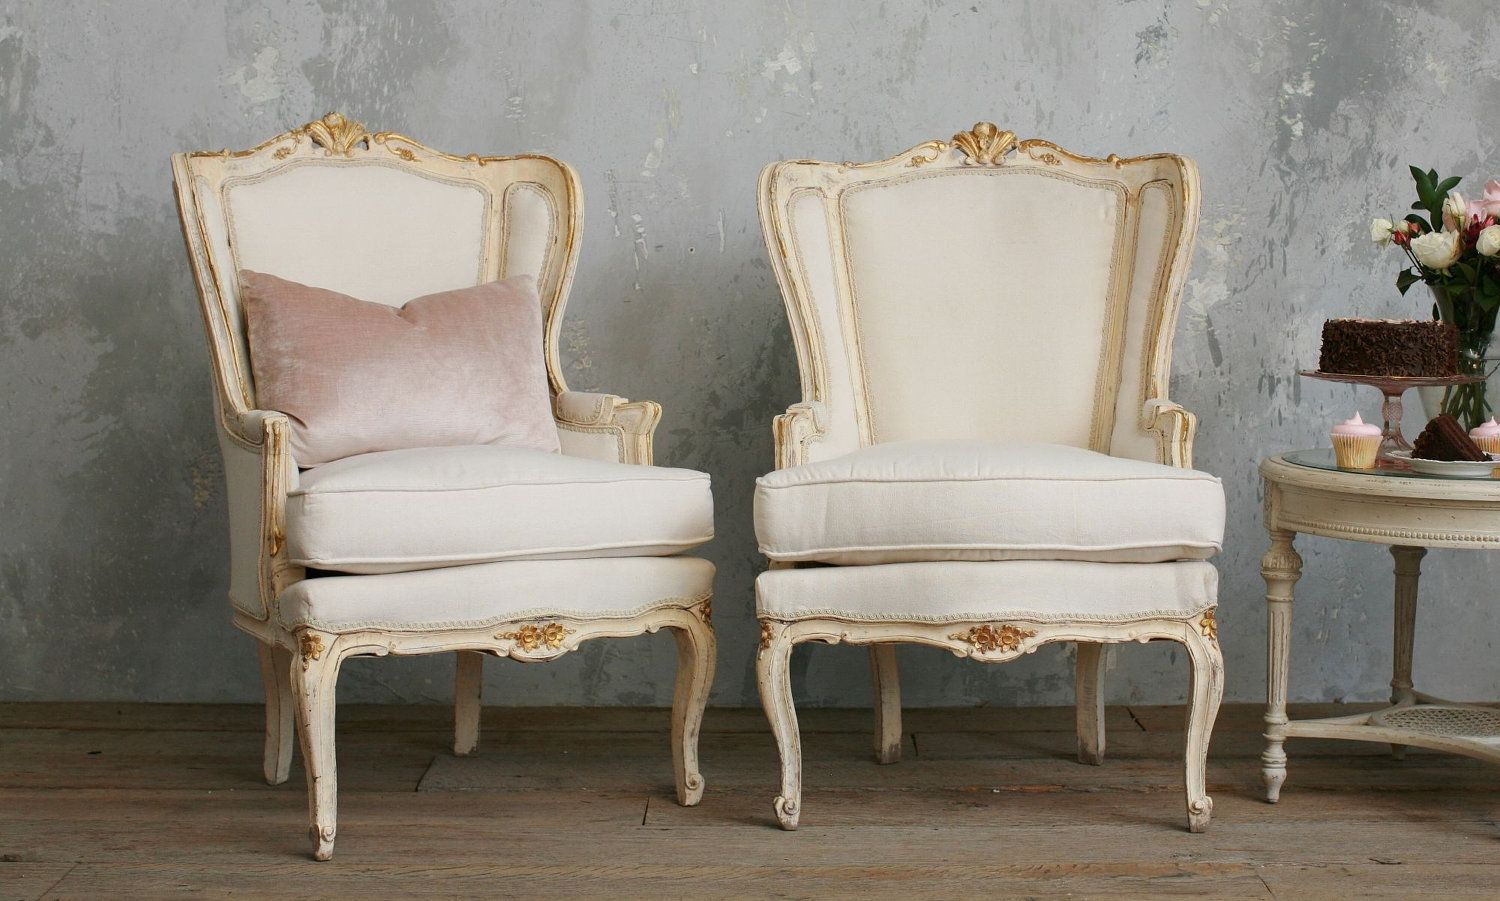 French Wingback Bergeres Vintage Louis Xv Chairs By Bohemiennes 2 800 00 Home Decor Home Pretty Furniture